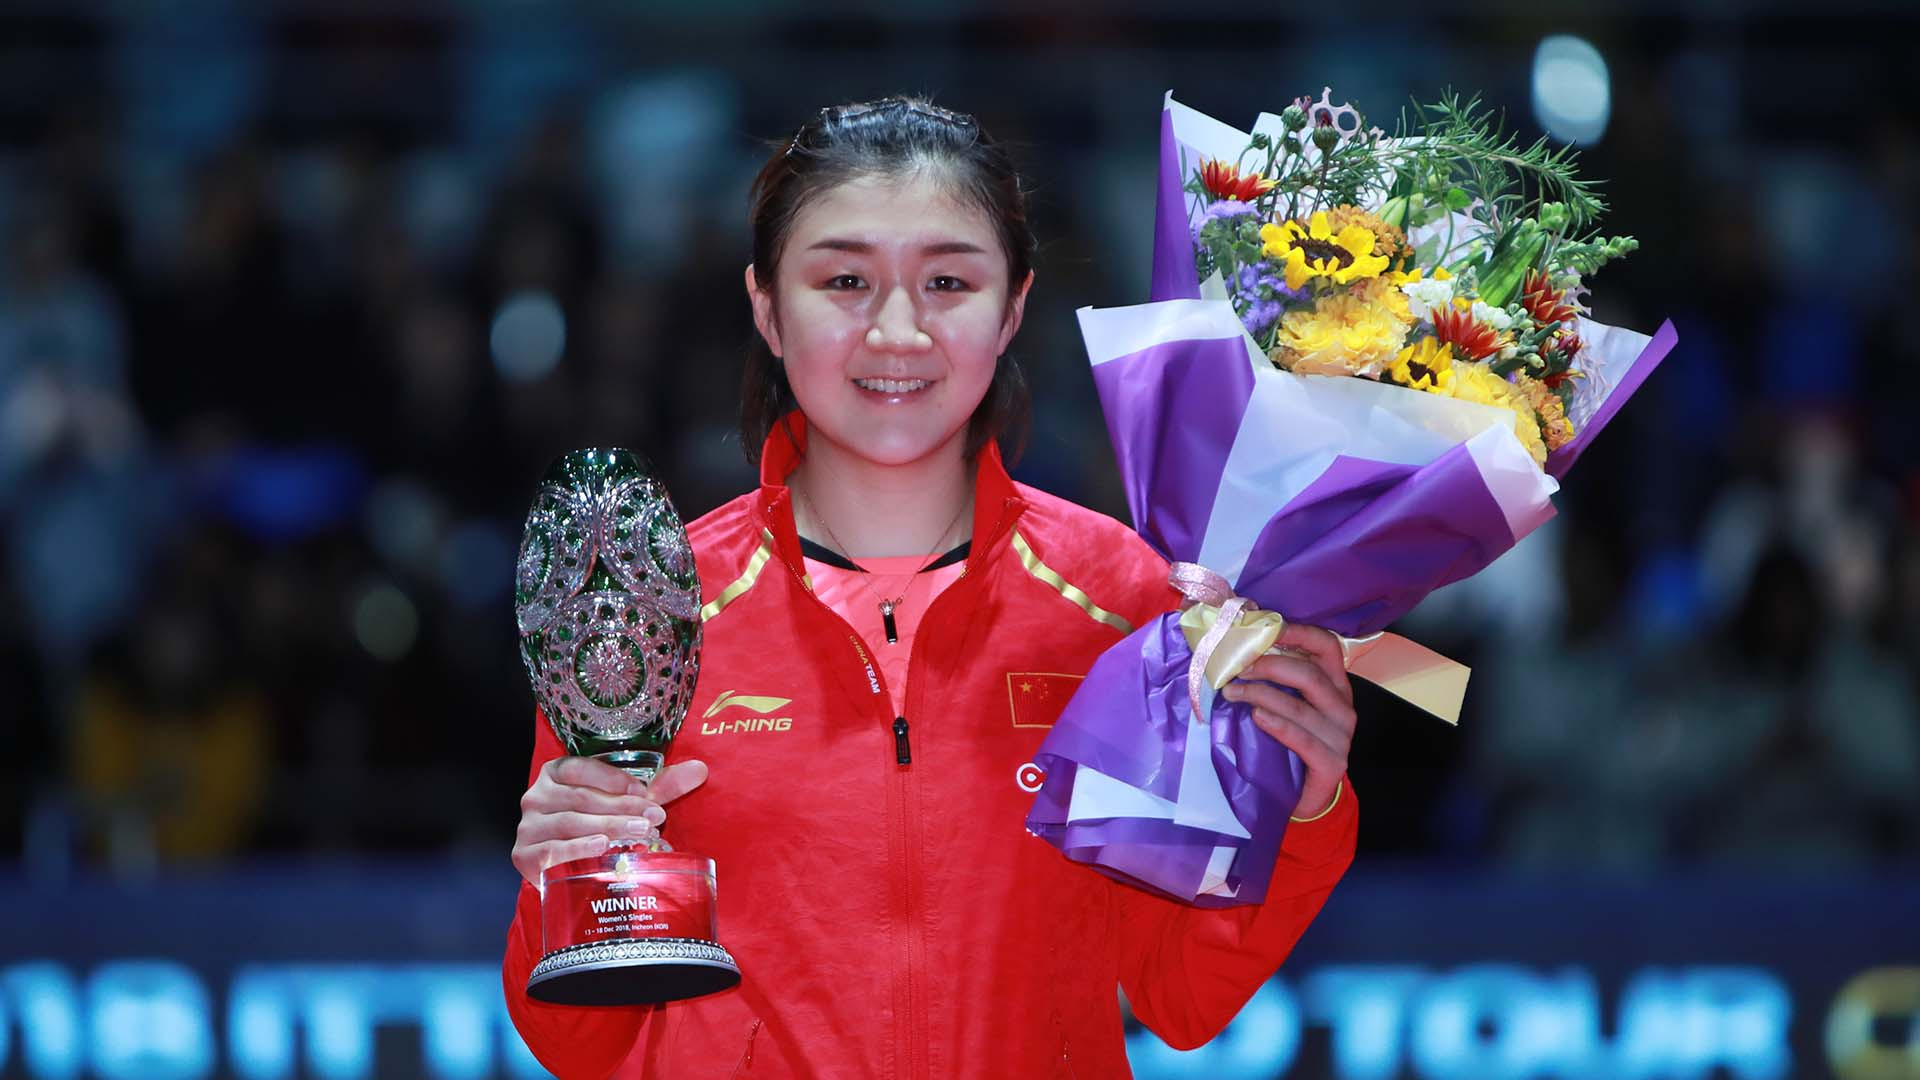 China's Chen Meng retained her women's singles title at the ITTF World Tour Grand Finals in Incheon, South Korea ©IITTF